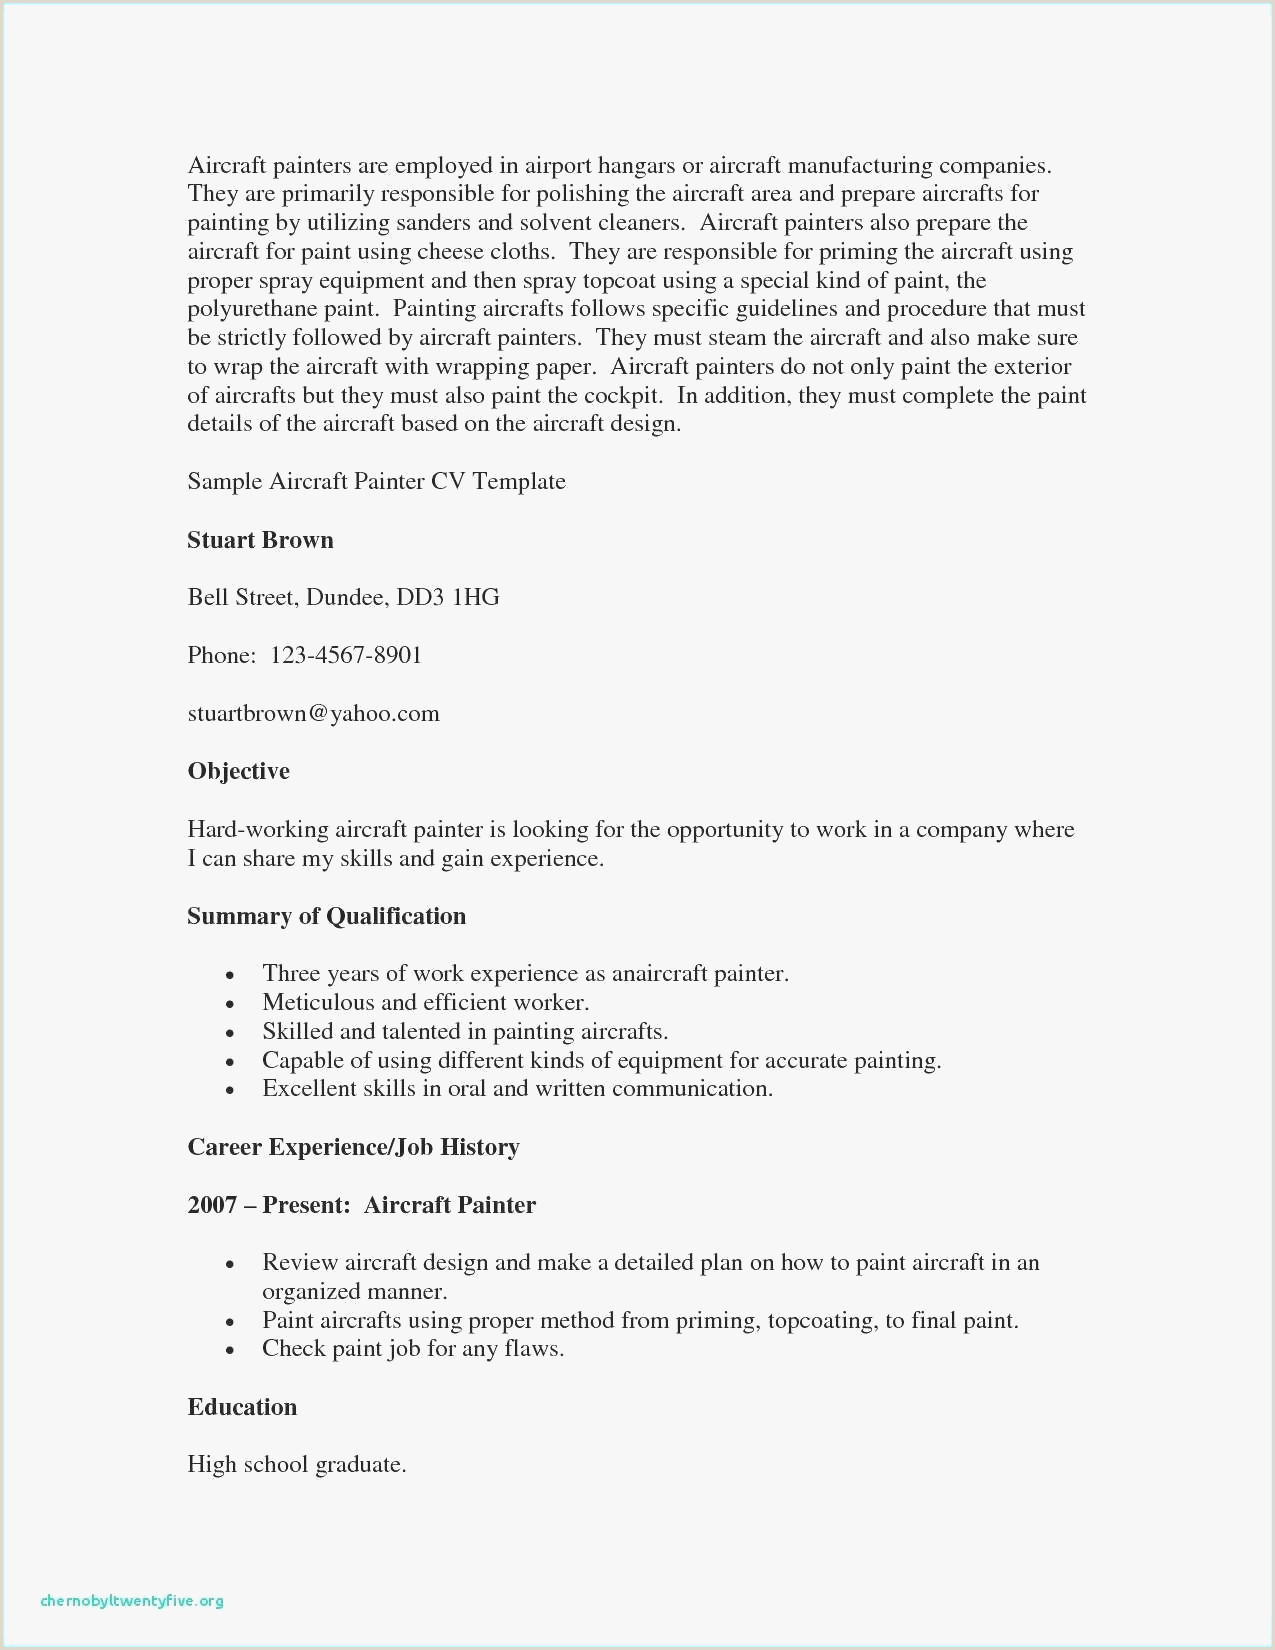 Sample Resumes for Child Care 15 Examples Hard Skills Resume